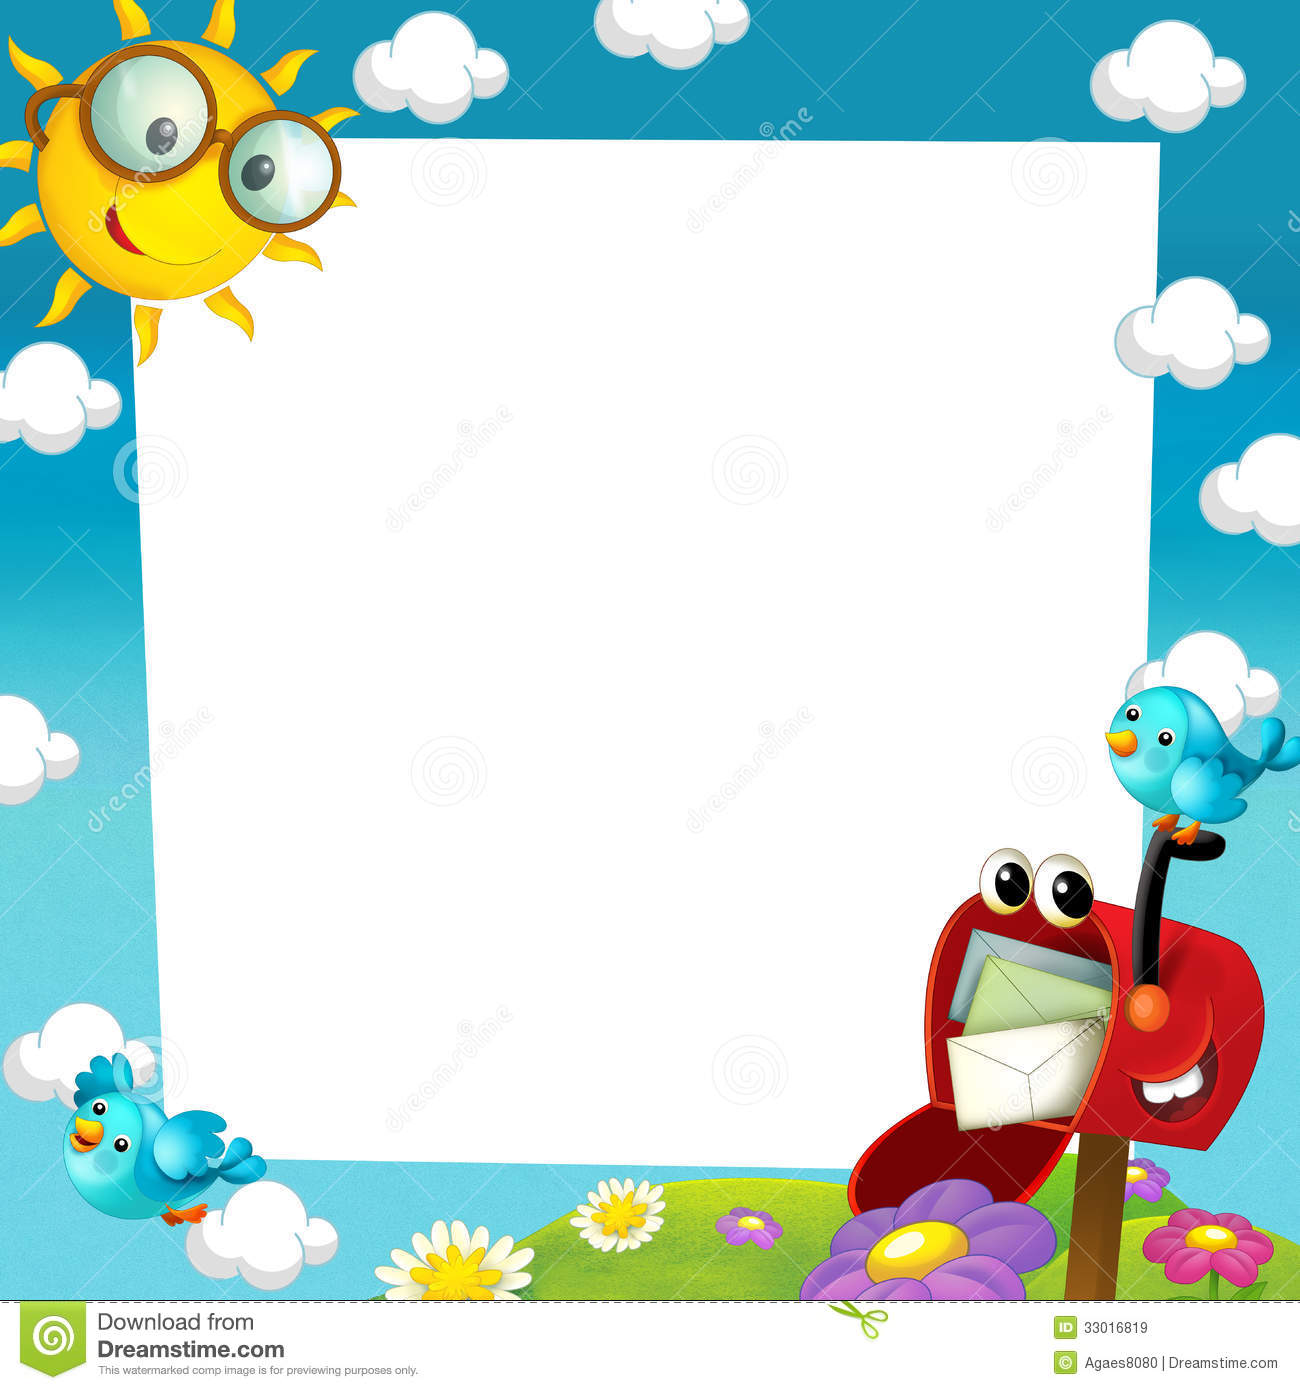 Cute Pooh Bear Wallpapers Happy And Colorful Frame For The Children Stock